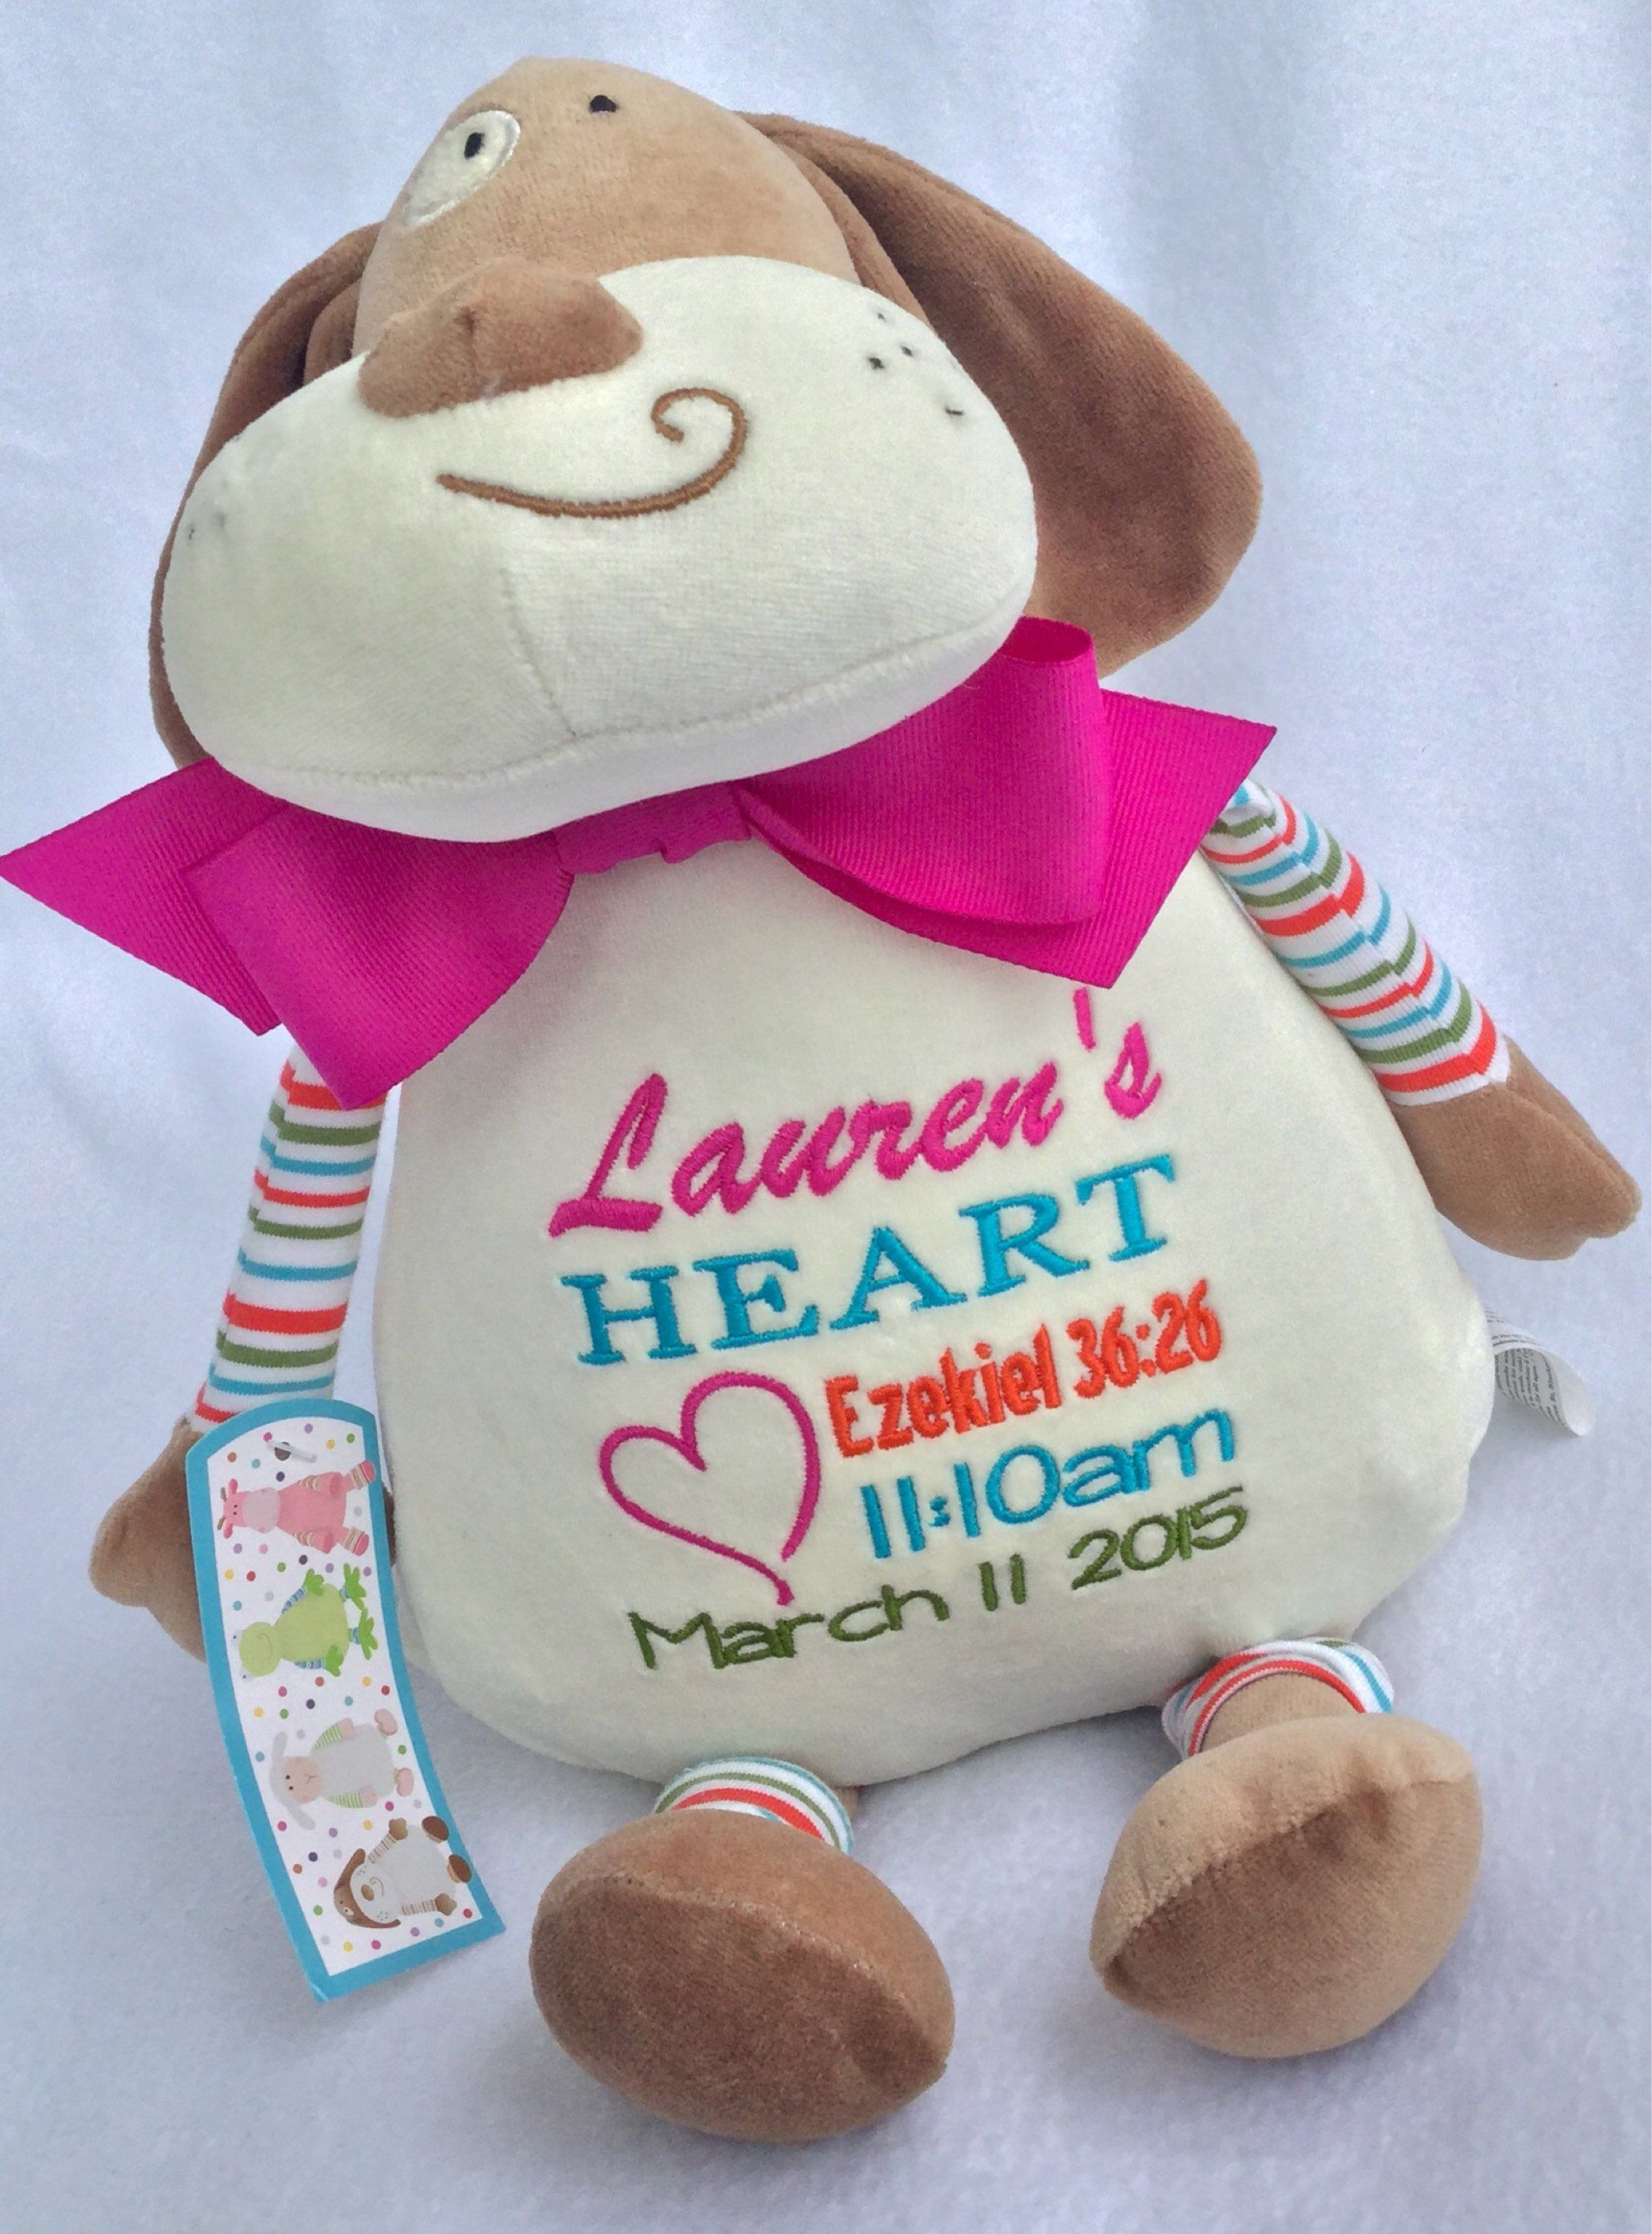 Personalized stuffed animal heart warrior chd heart surgery gift personalized stuffed animal heart warrior chd heart surgery gift baby child negle Image collections